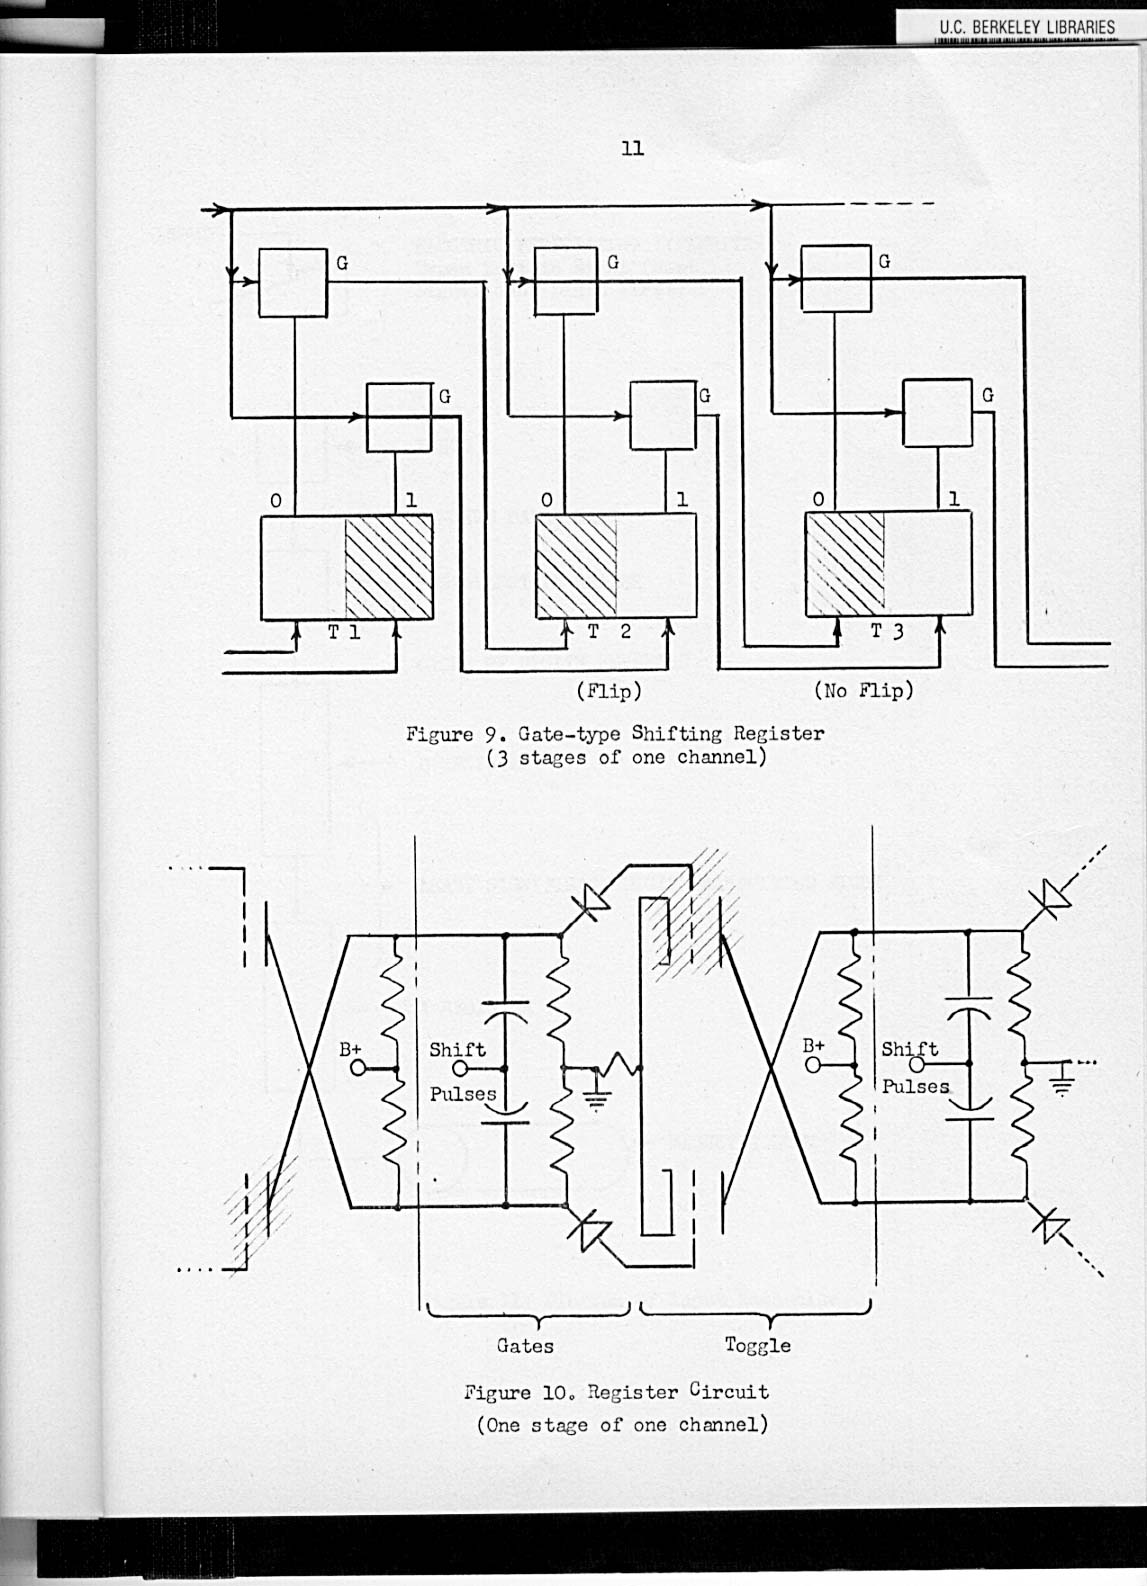 hunter thermostat 44132 wiring diagram wiring diagram Five Wire Thermostat Honeywell Digital Thermostat Wiring Diagram